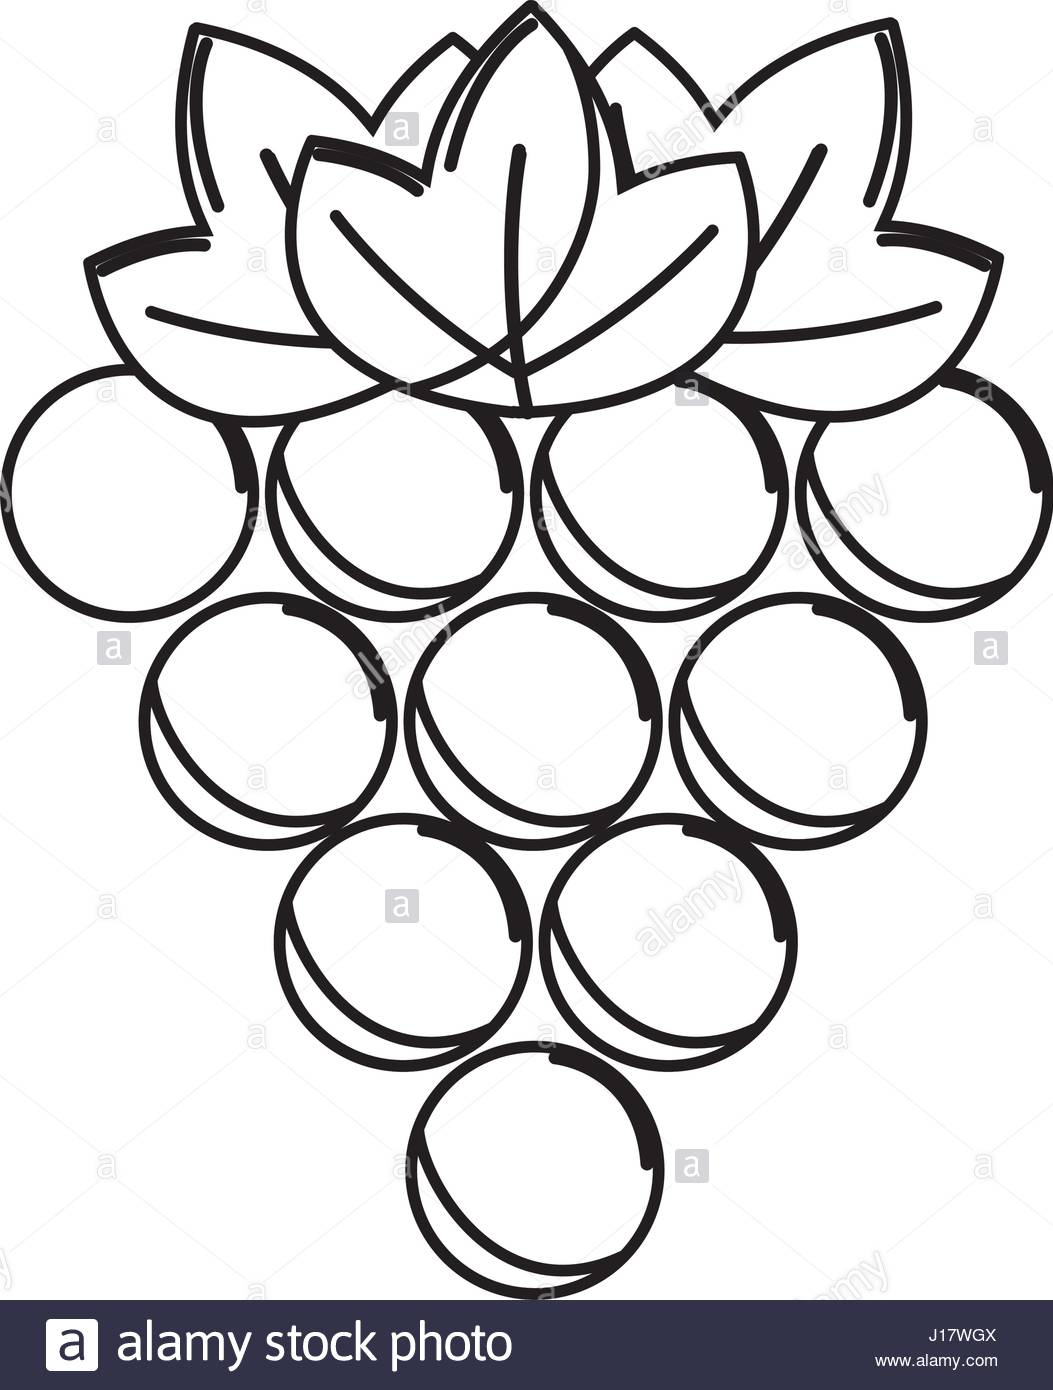 1053x1390 Silhouette Grapes Fruit Icon Image Stock Vector Art Amp Illustration